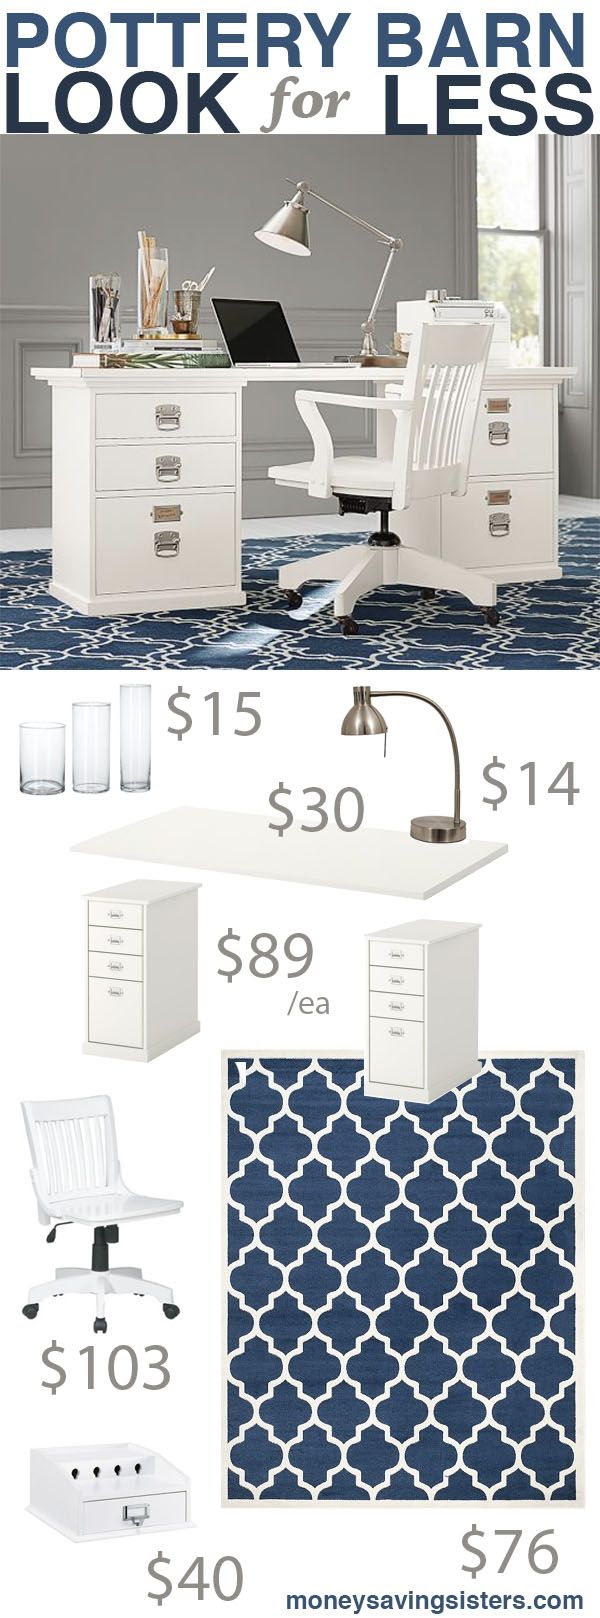 this site has lots of pottery barn knockoffs and rooms on a budget love the look of this pottery barn office makeover